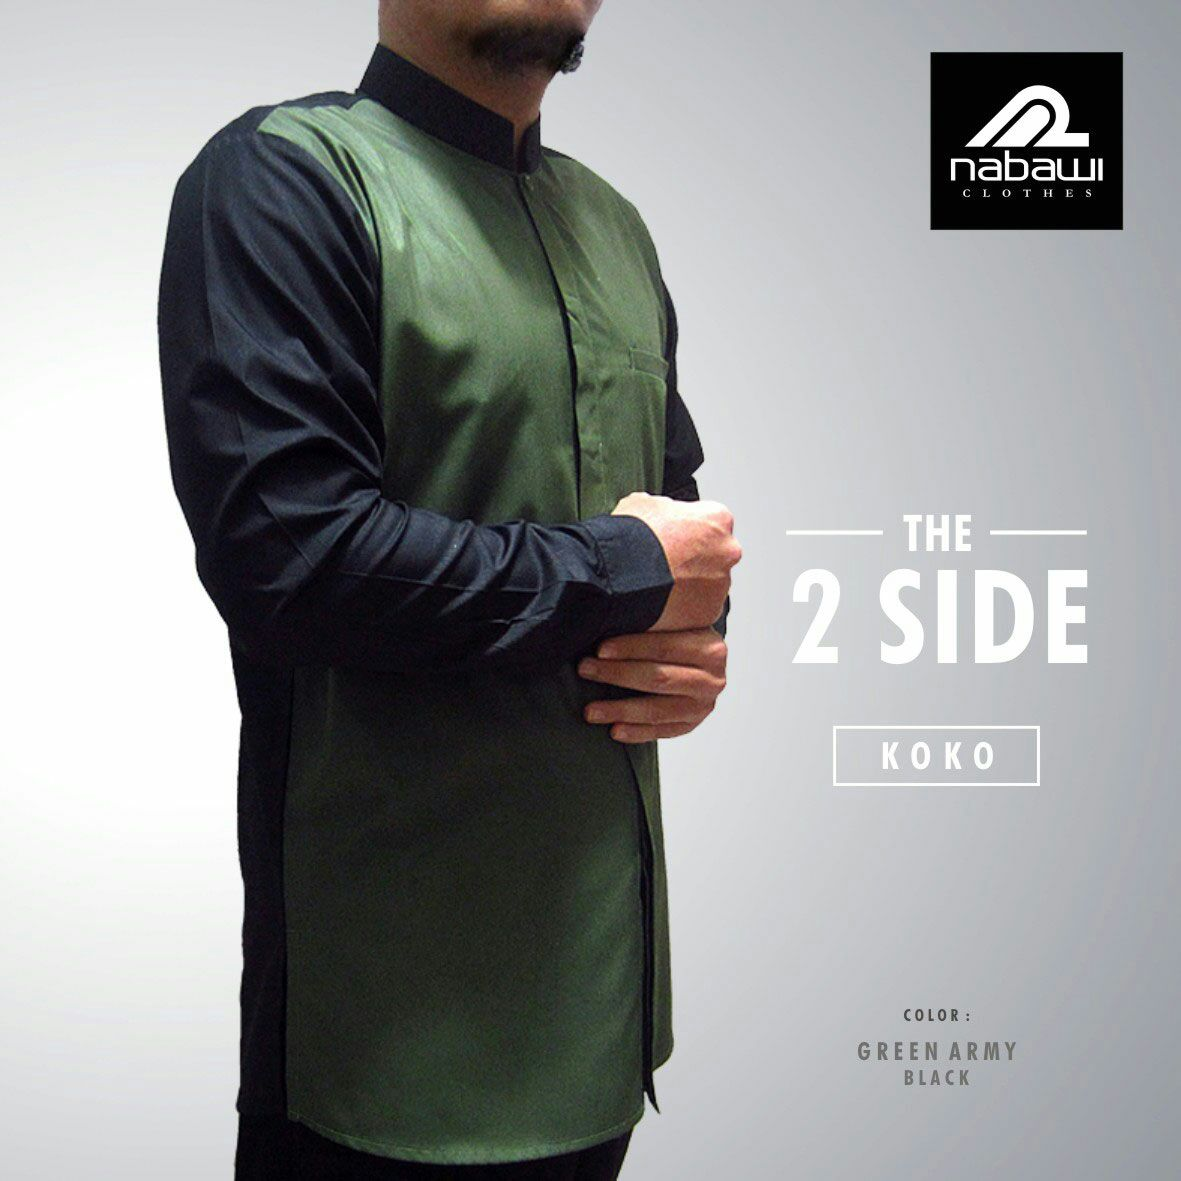 nabawiclothes-com-baju-koko-nabawi-the-2-side-green